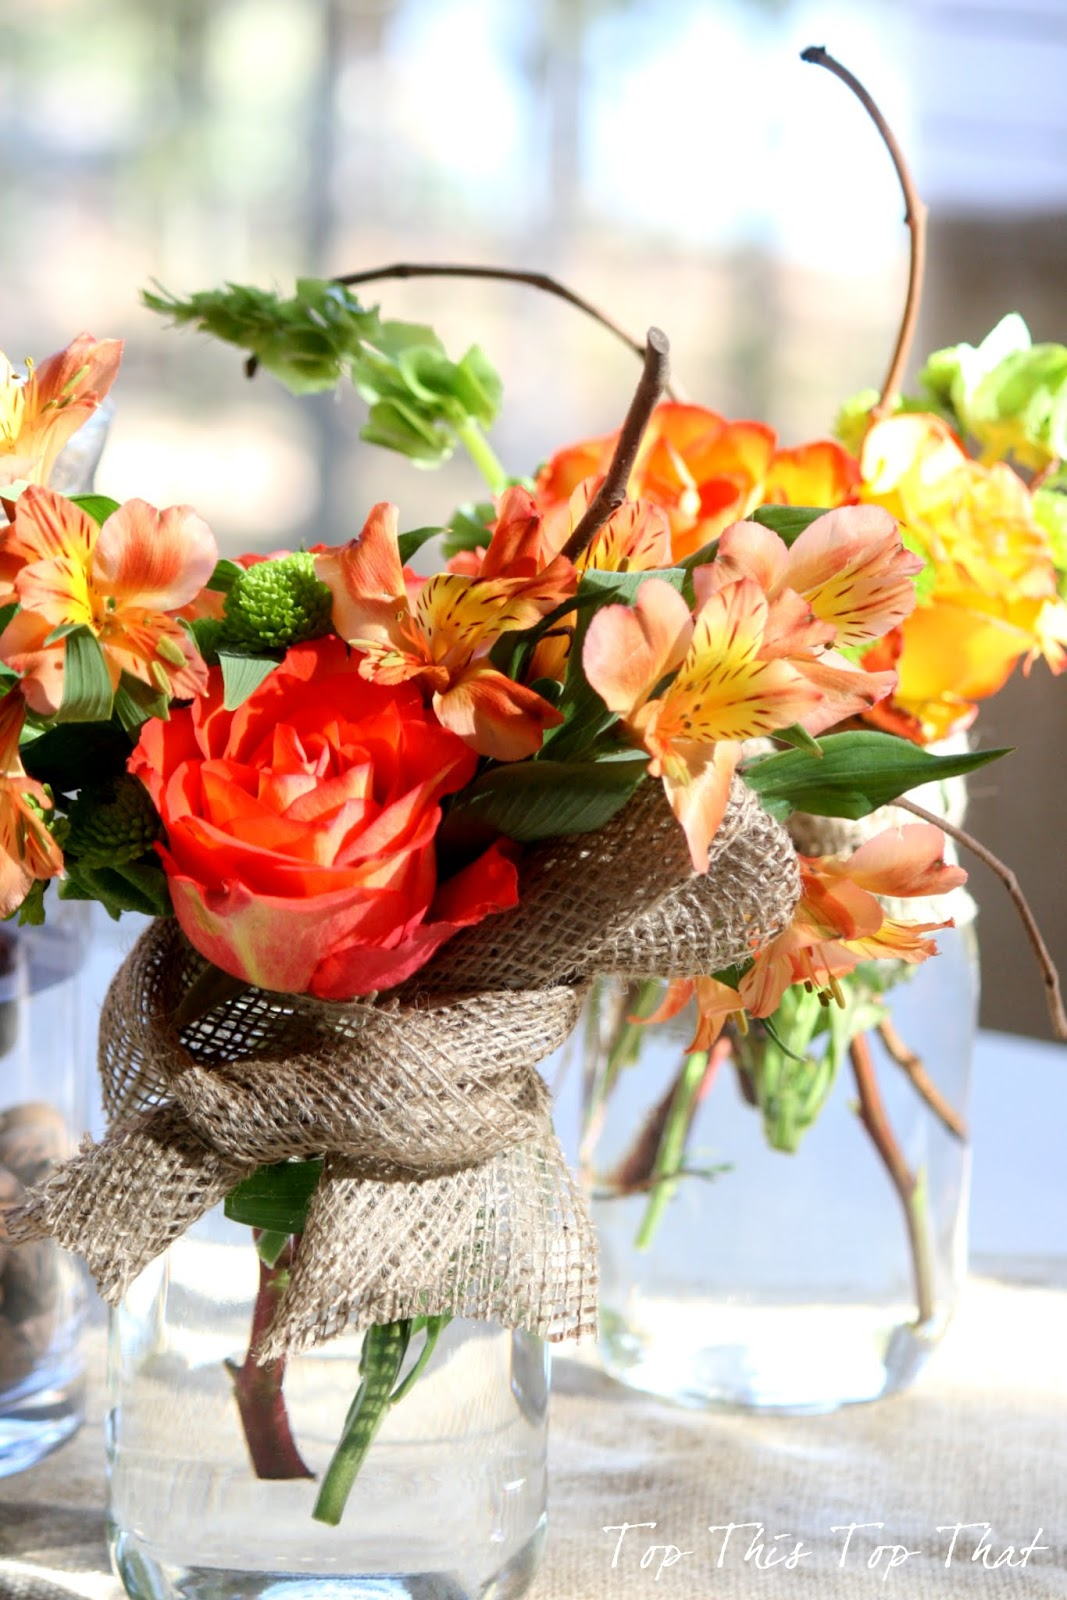 How To Make A Flower Arrangement Cool With How to Make Fall Flower Arrangements Photos